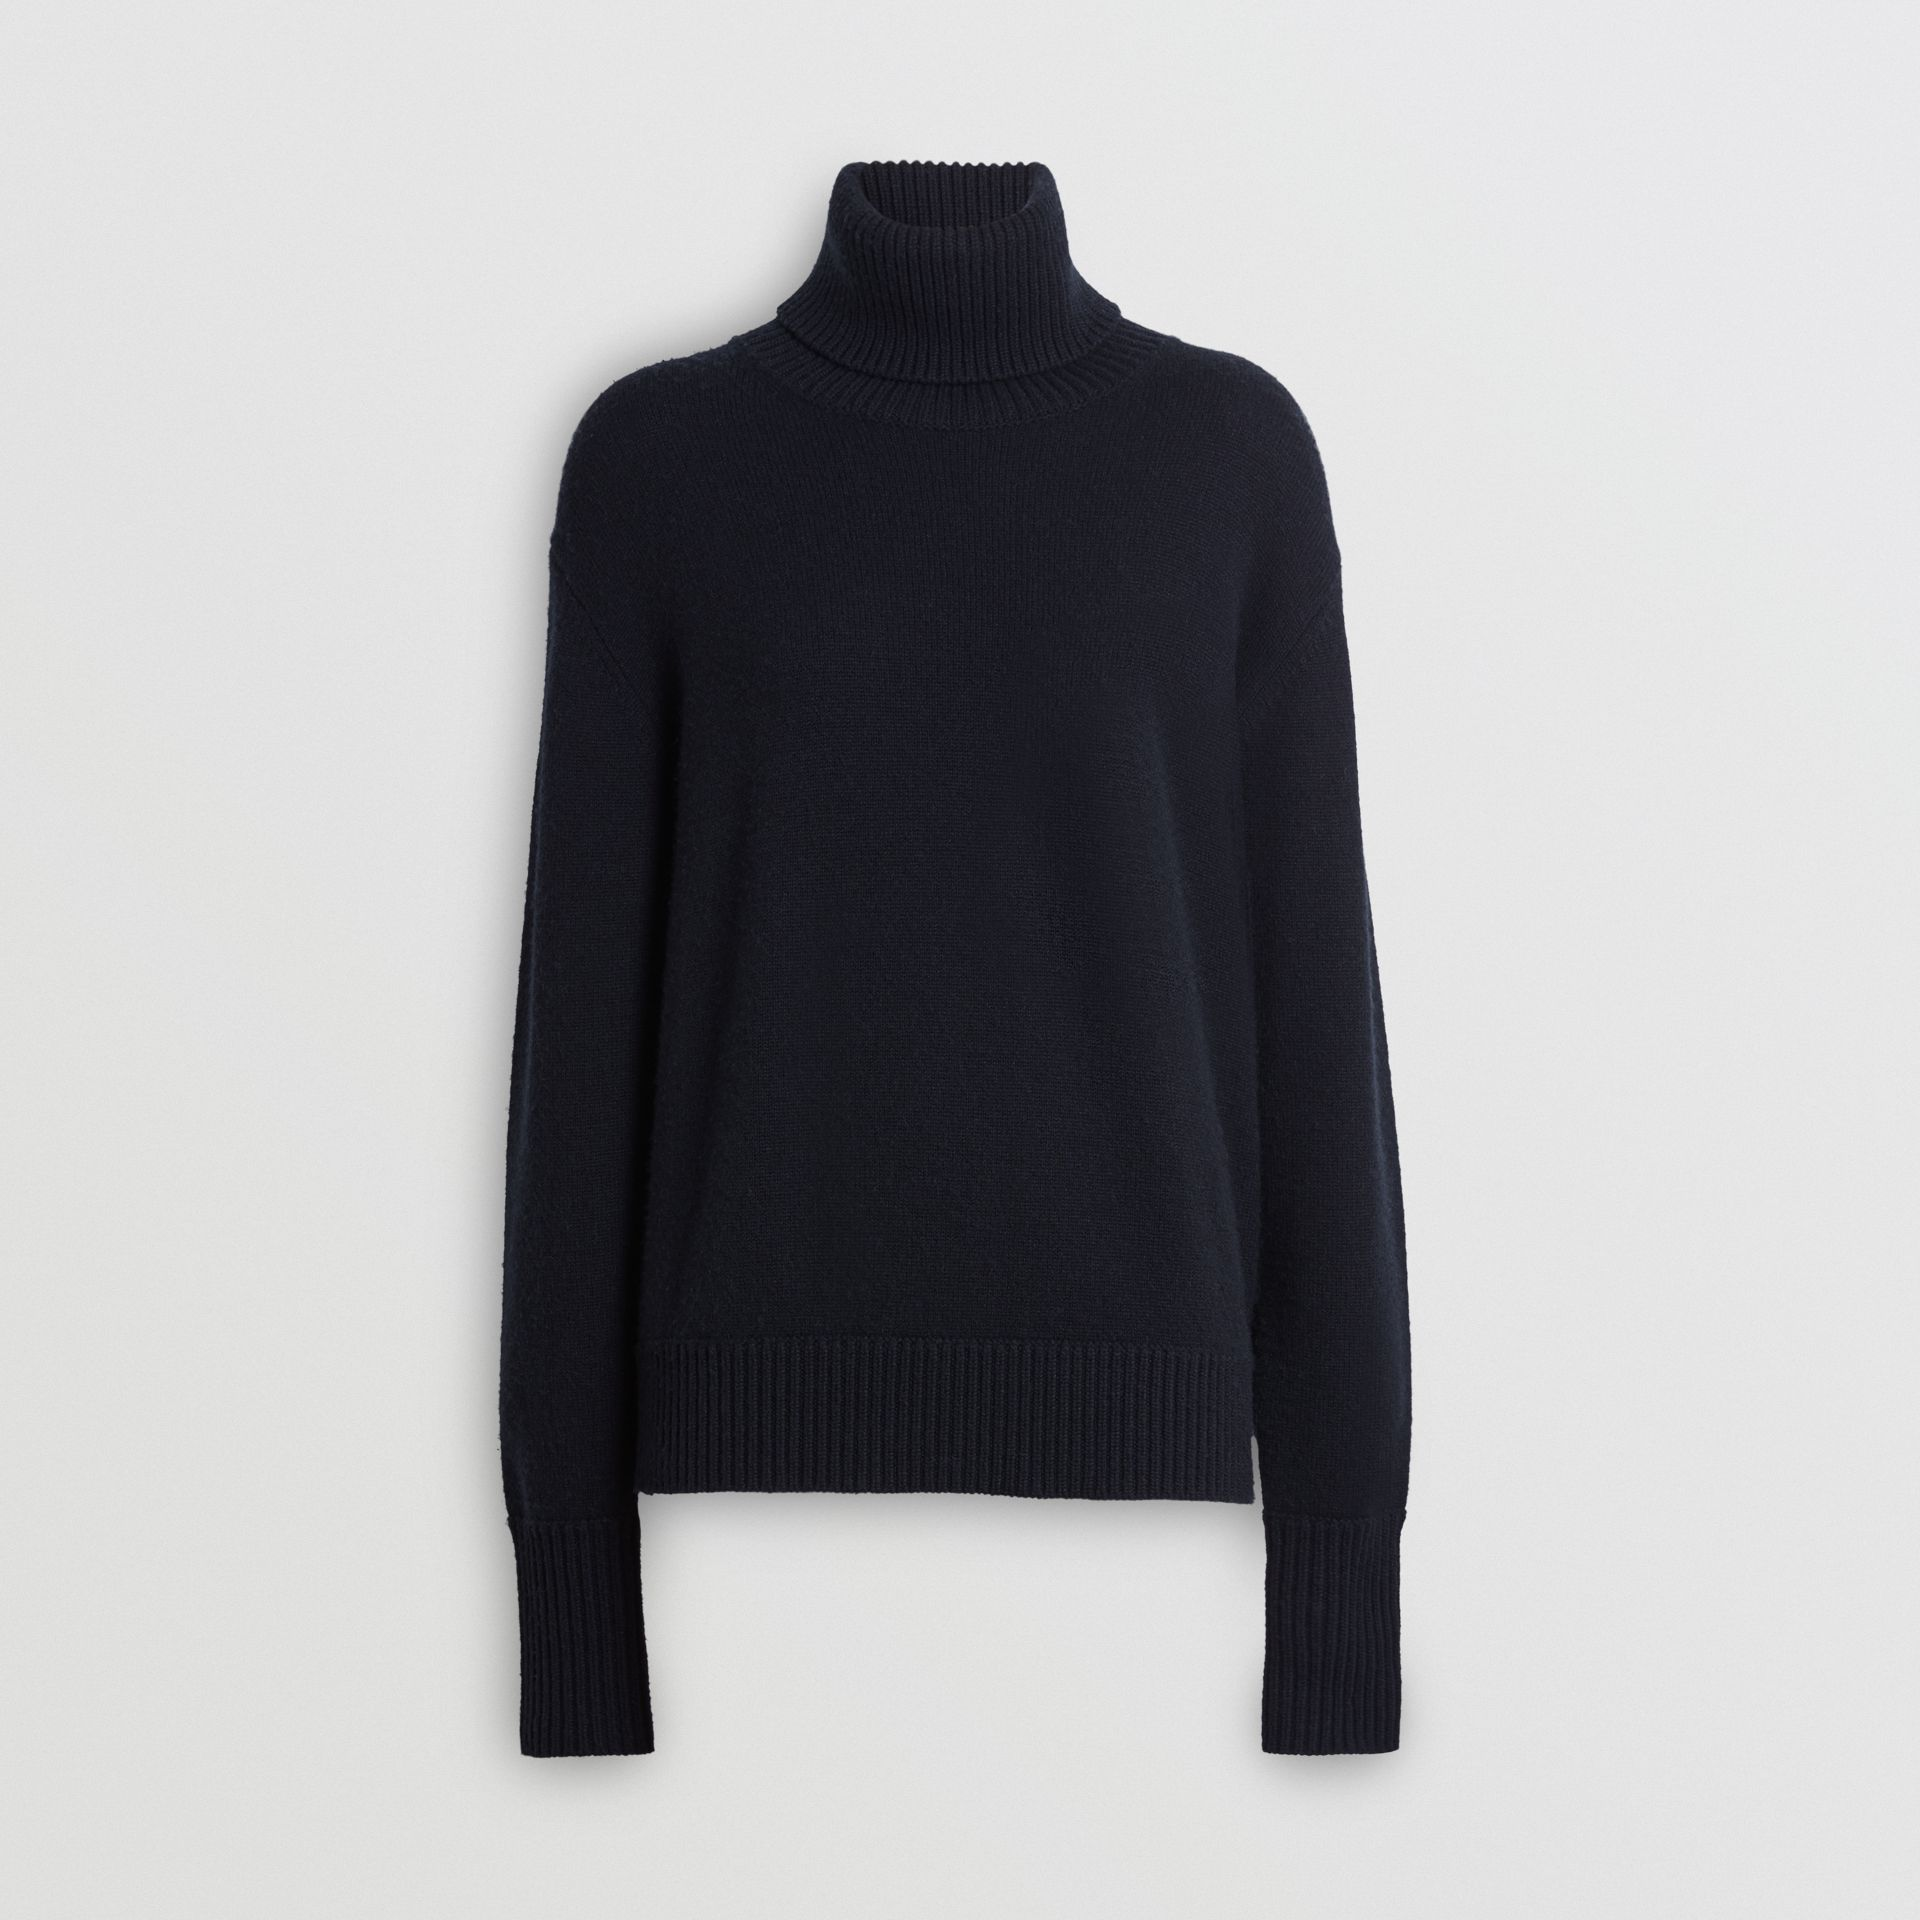 Embroidered Crest Cashmere Roll-neck Sweater in Navy - Women | Burberry United Kingdom - gallery image 3